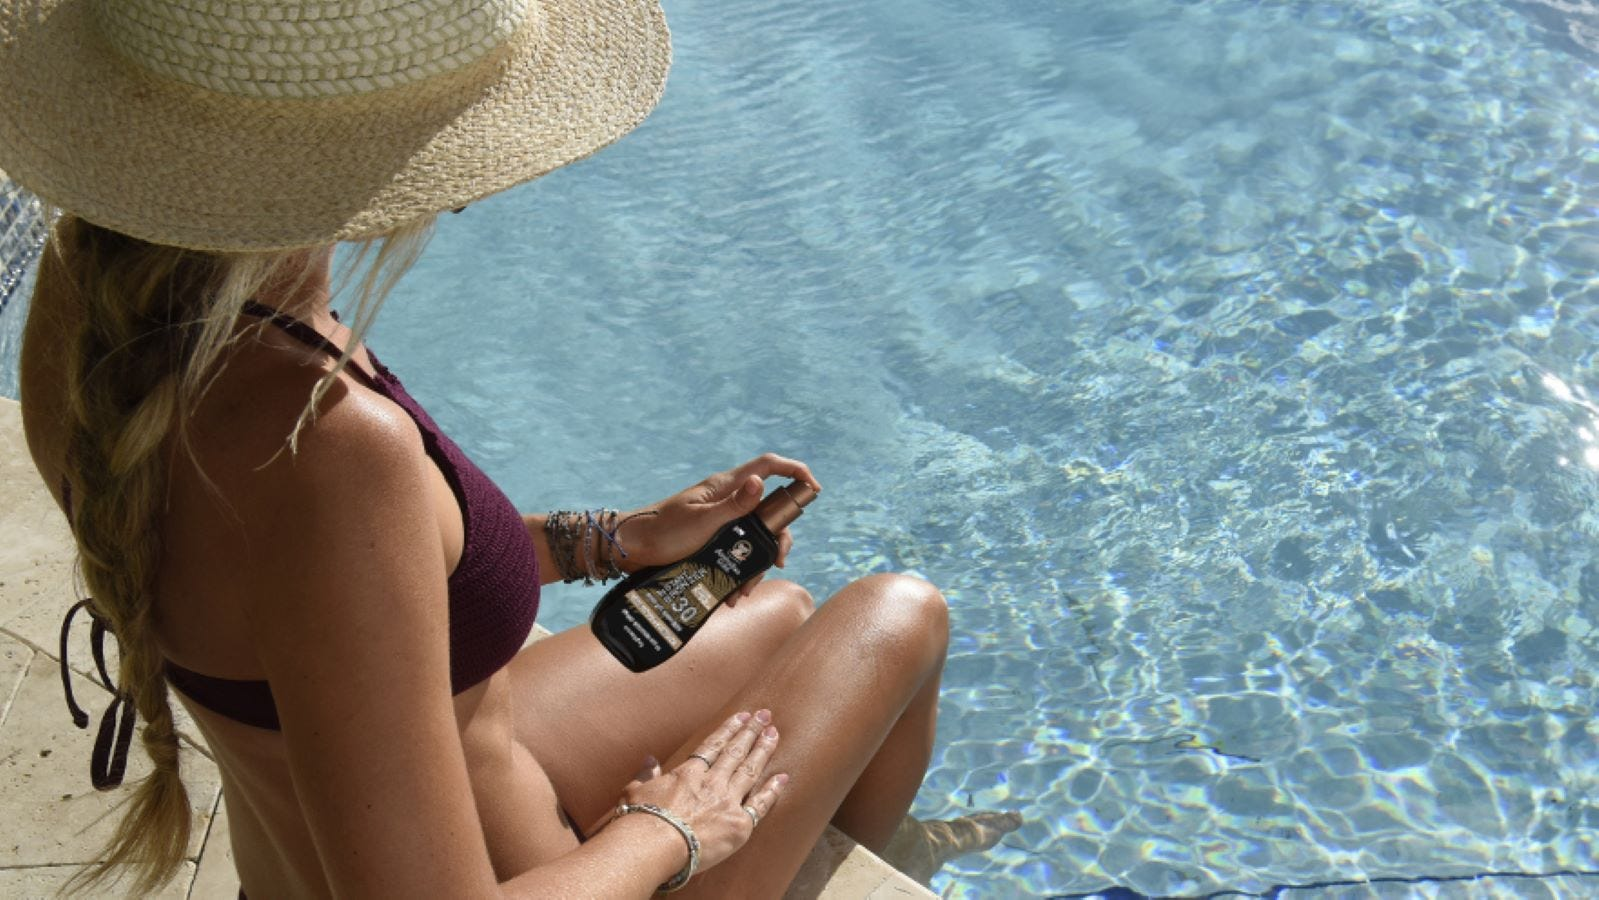 A woman by a pool applying Australian Gold Instant Bronzer 30 SPF.